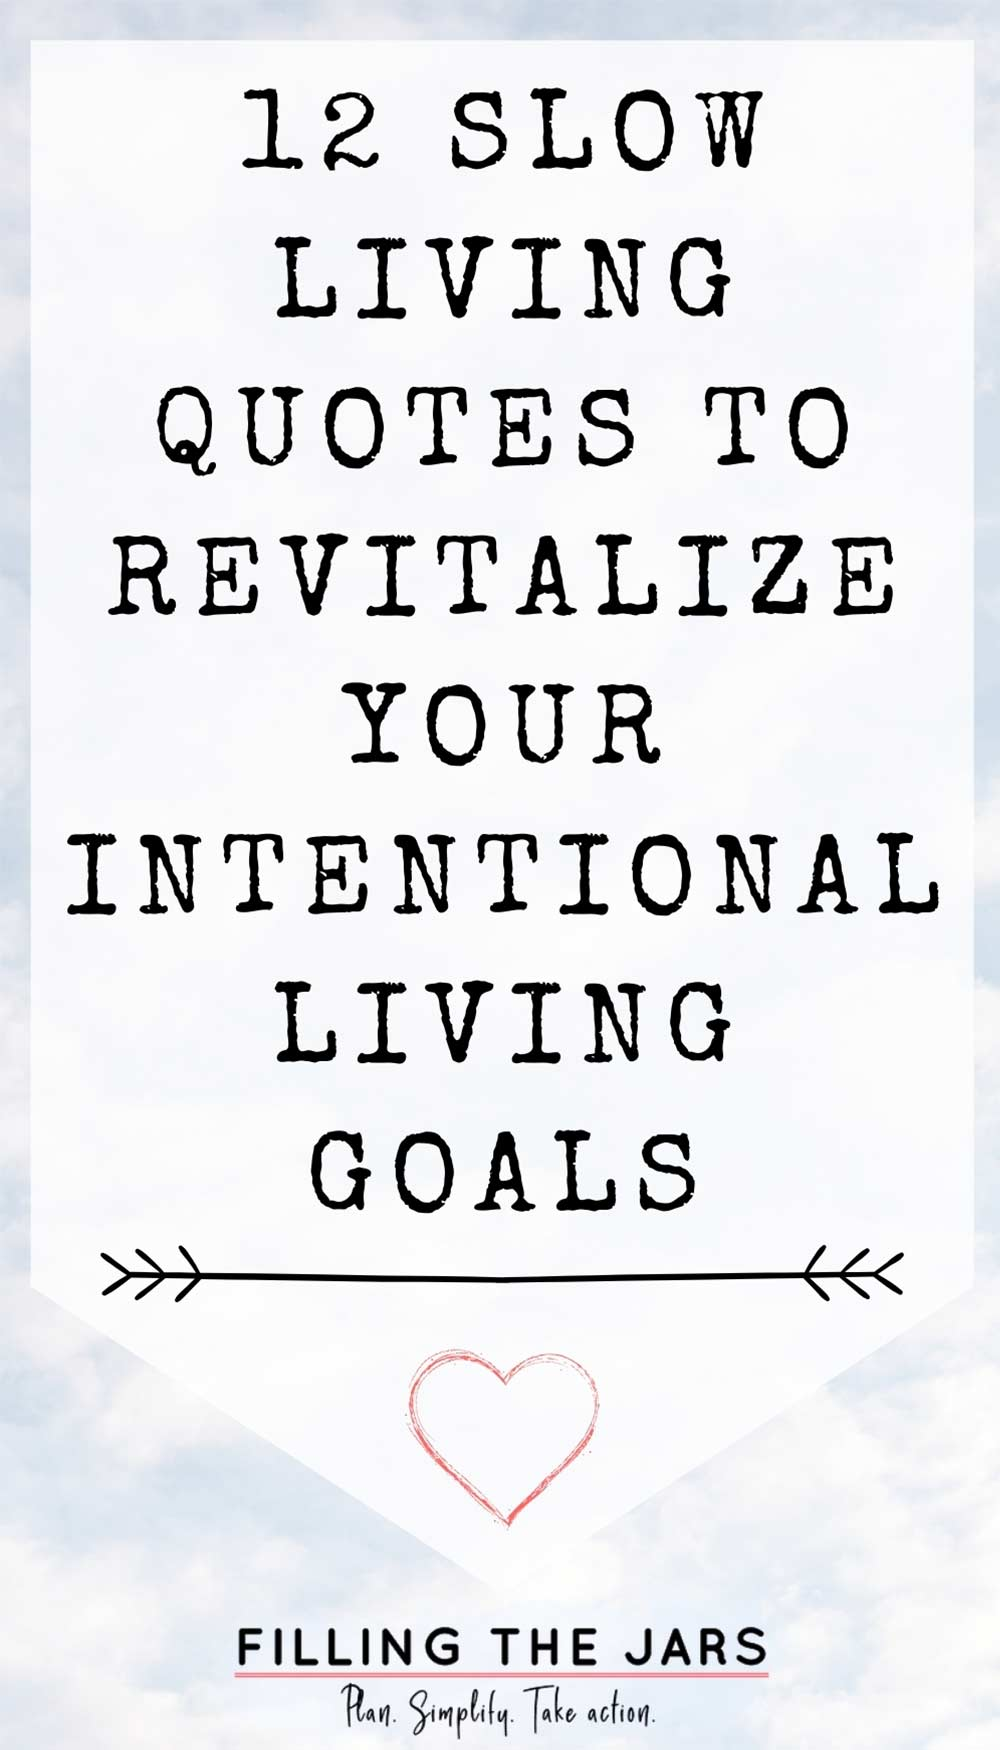 Text slow living quotes to revitalize your intentional living goals on white background over image of fluffy white clouds against blue sky.